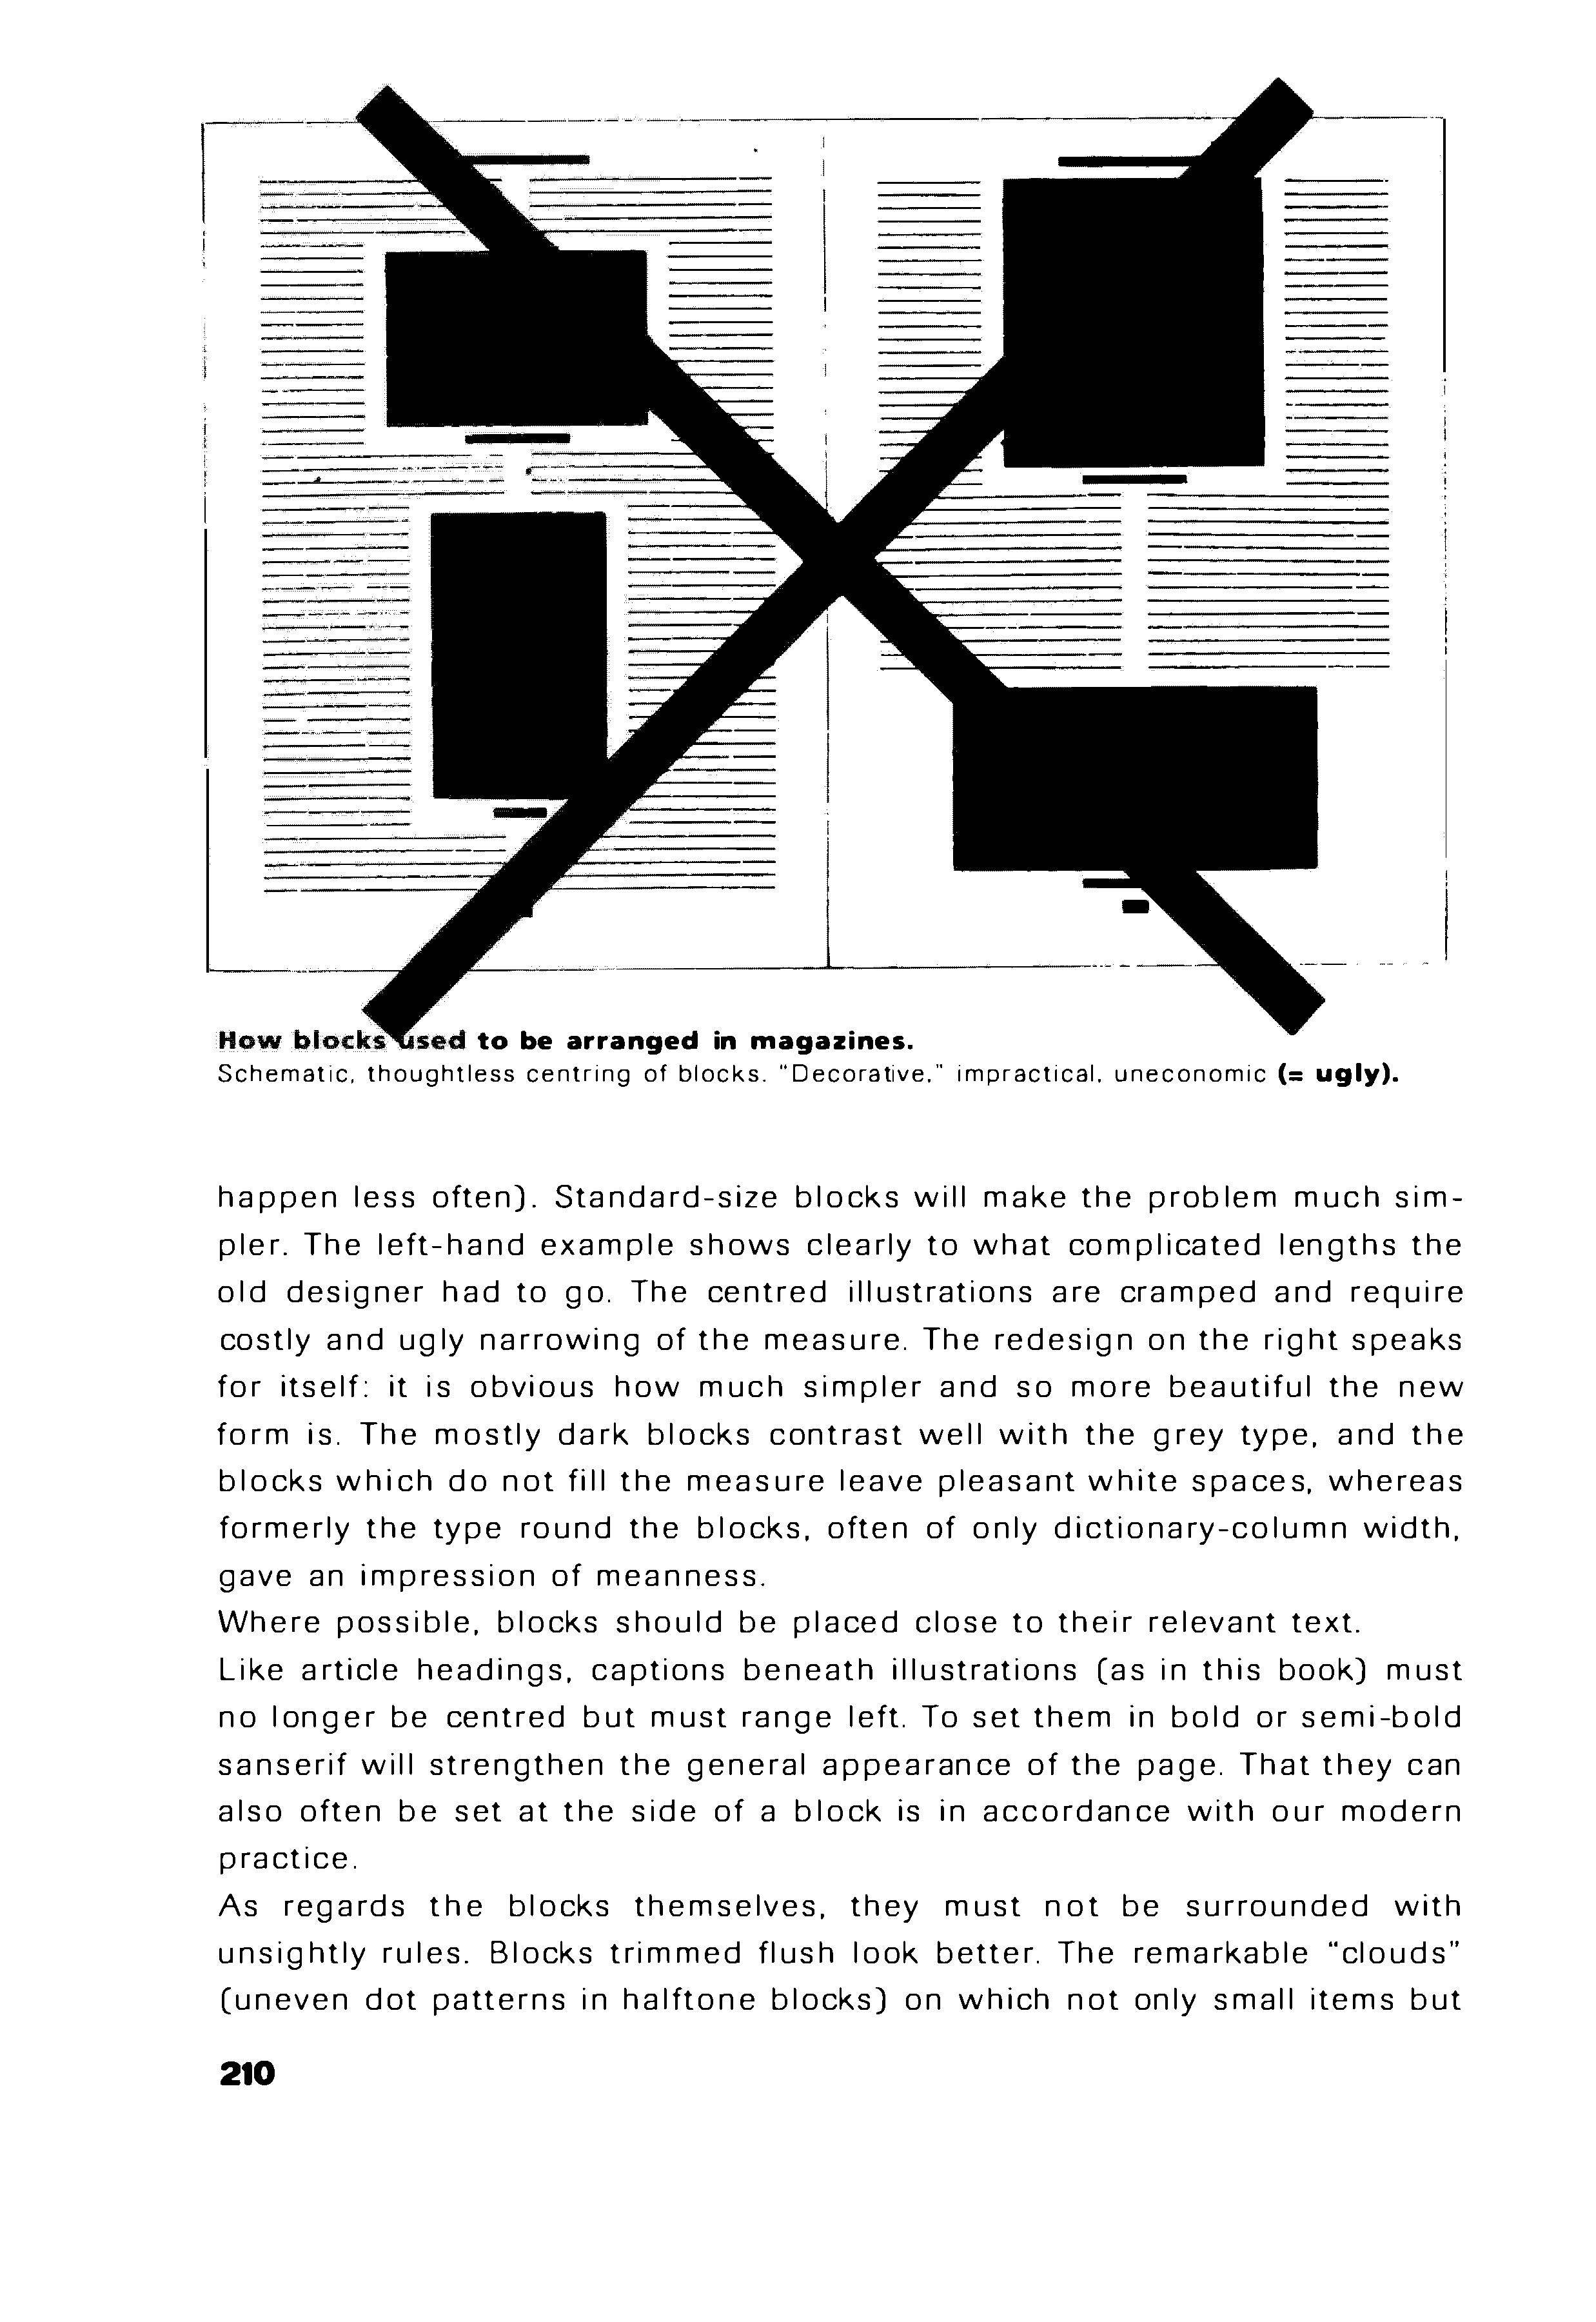 jan-tschichold-the-new-typography-1928_page_254